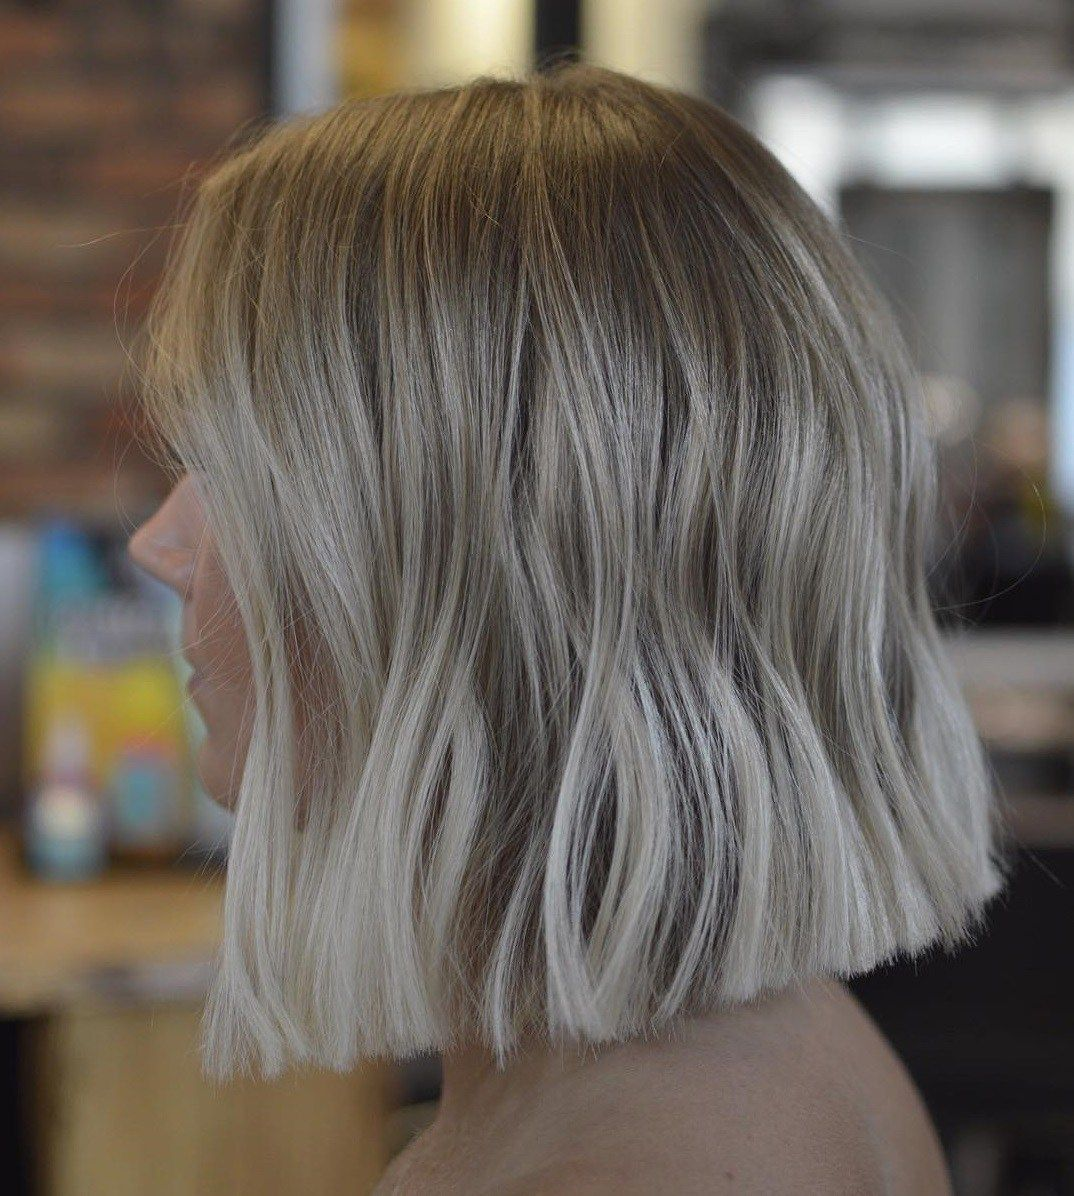 50 Spectacular Blunt Bob Hairstyles In 2019 Hair Pinterest